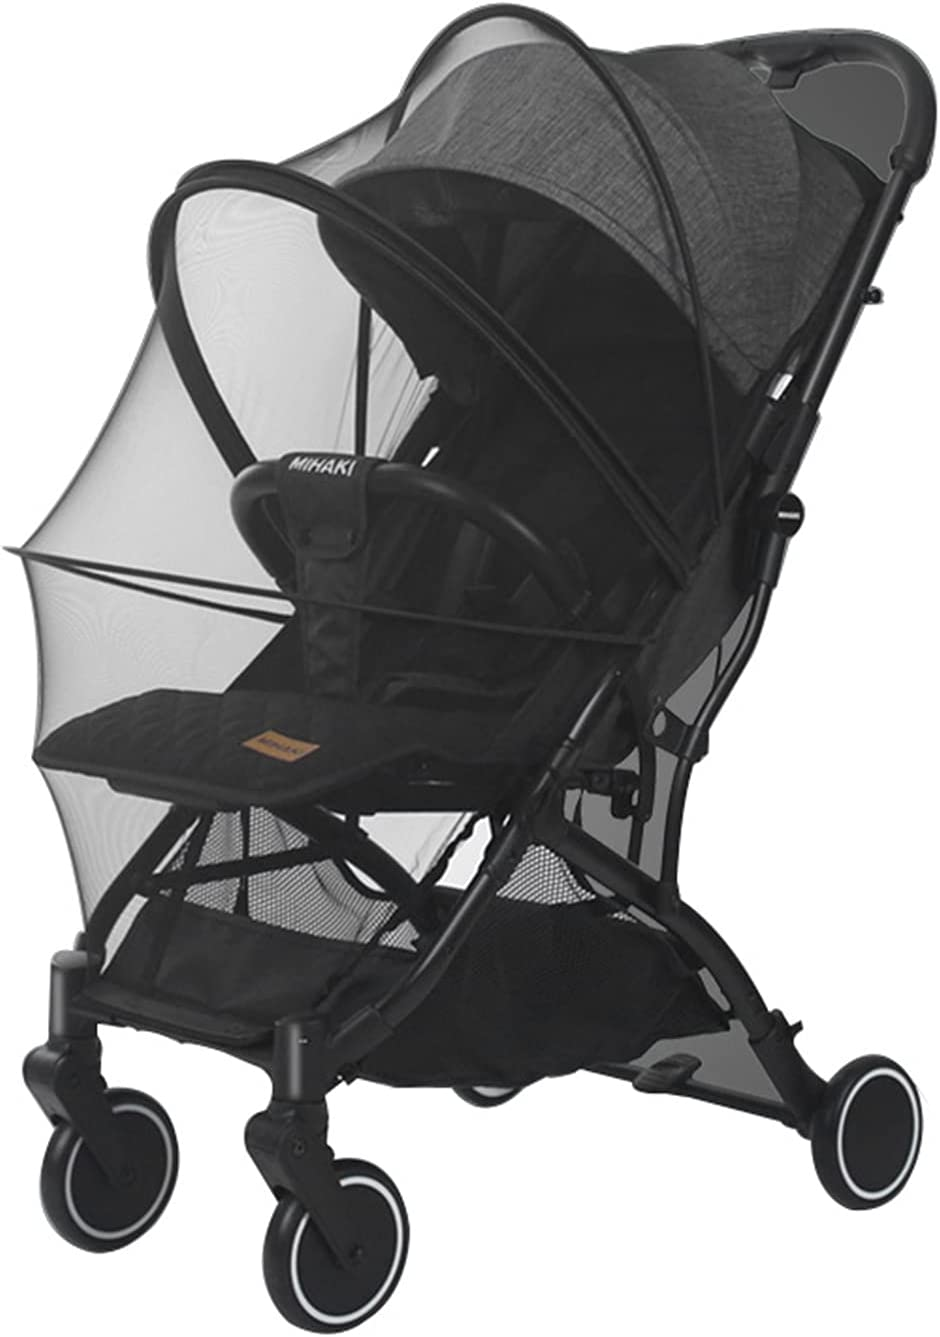 Baby Stroller Mosquito nets, Universal Lock-Type Baby Stroller Mosquito nets, Stretch nets, Breathable and Folding Dual-use Zipper nets, Baby car seat Covers, Cradles (Black)